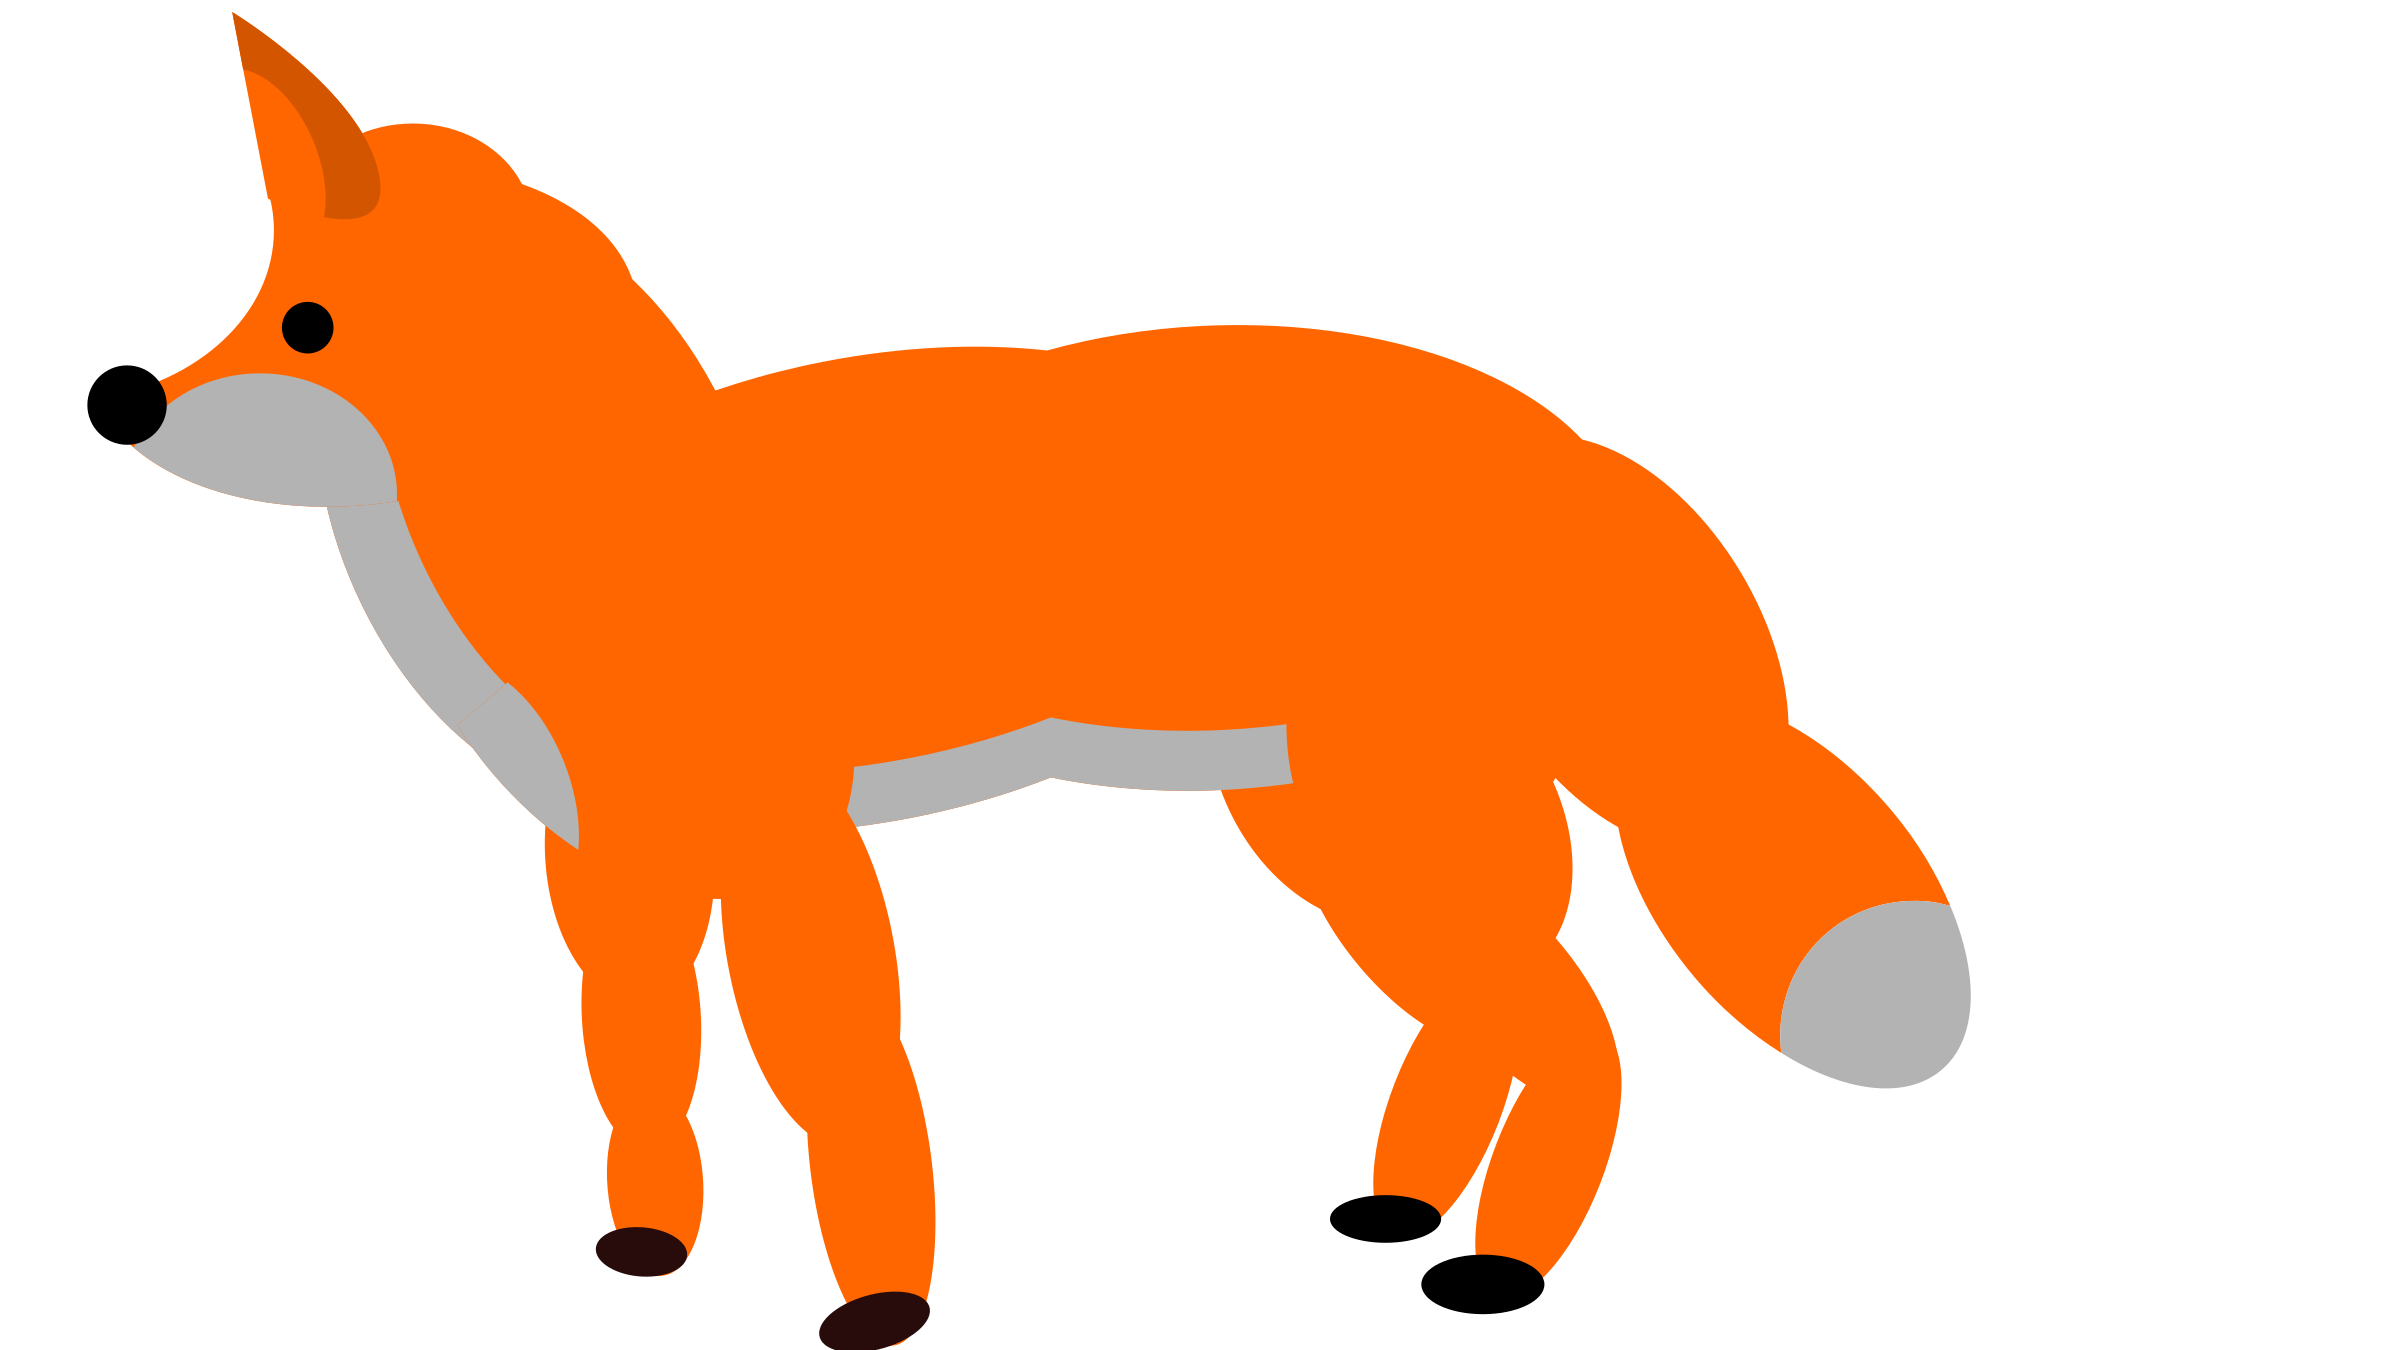 Free clipart fox. At getdrawings com for